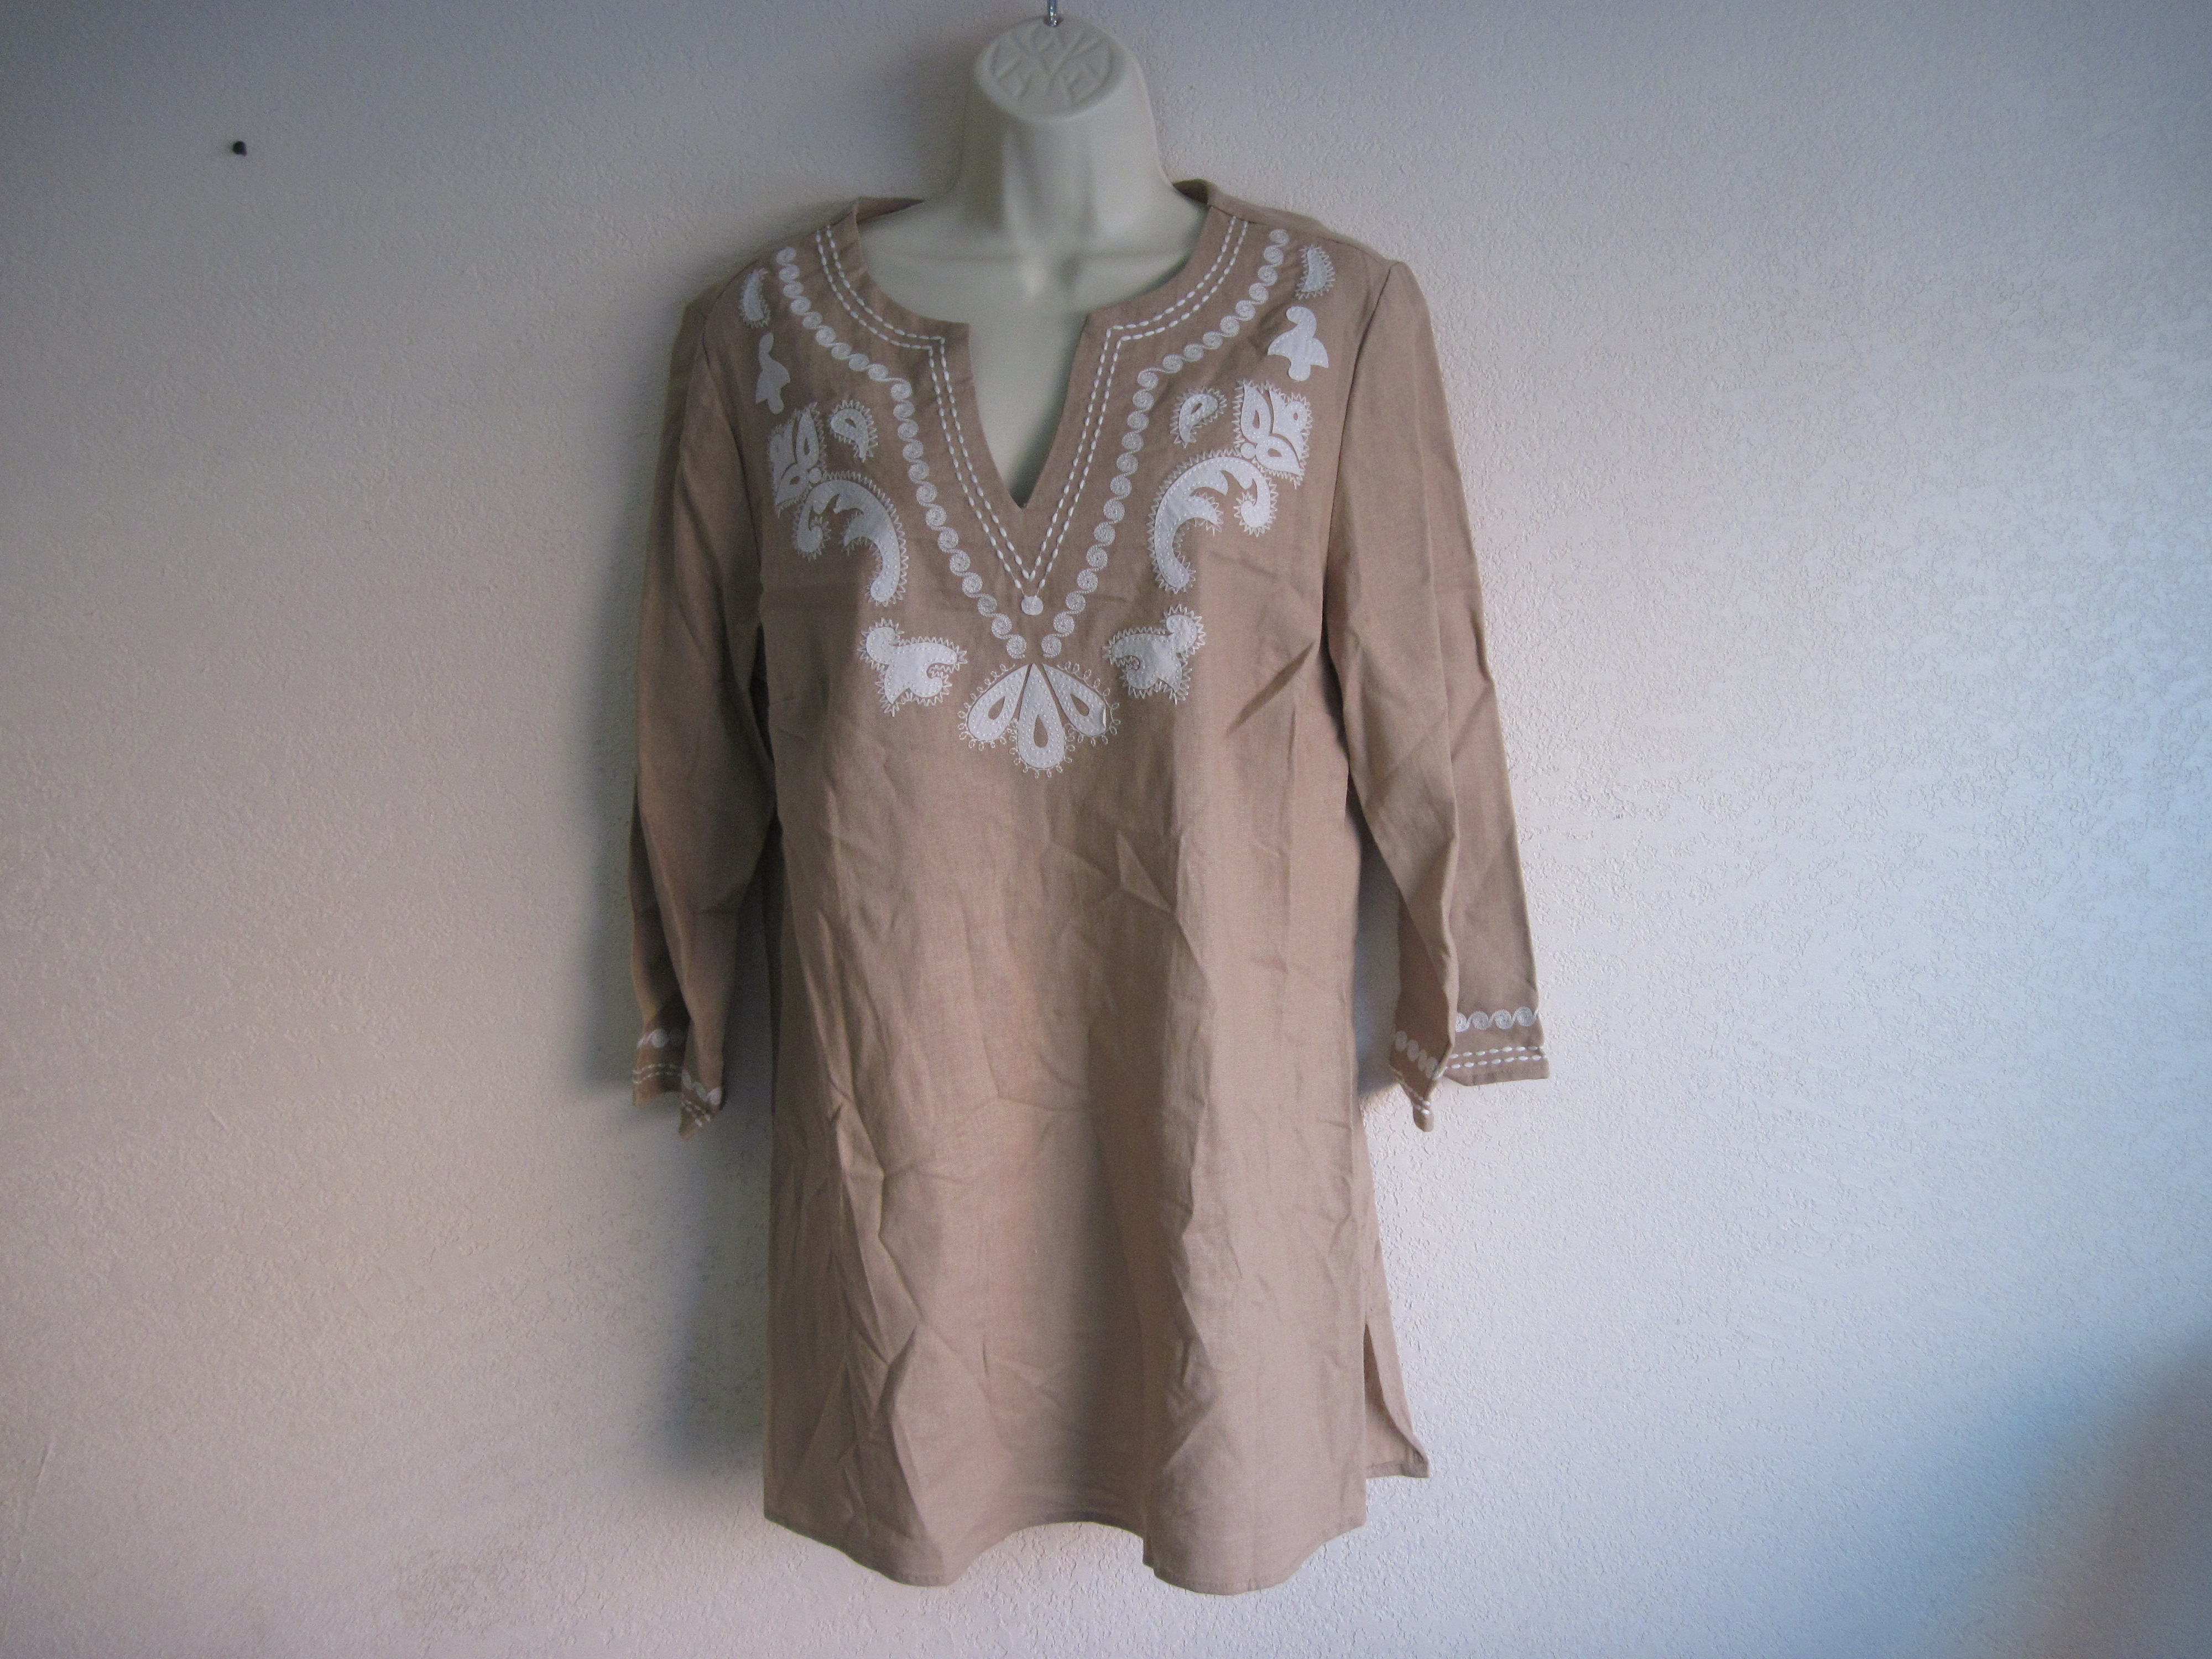 Jaclyn Smith Sz Small Summer Linen V-Neck Shirt - tan & white